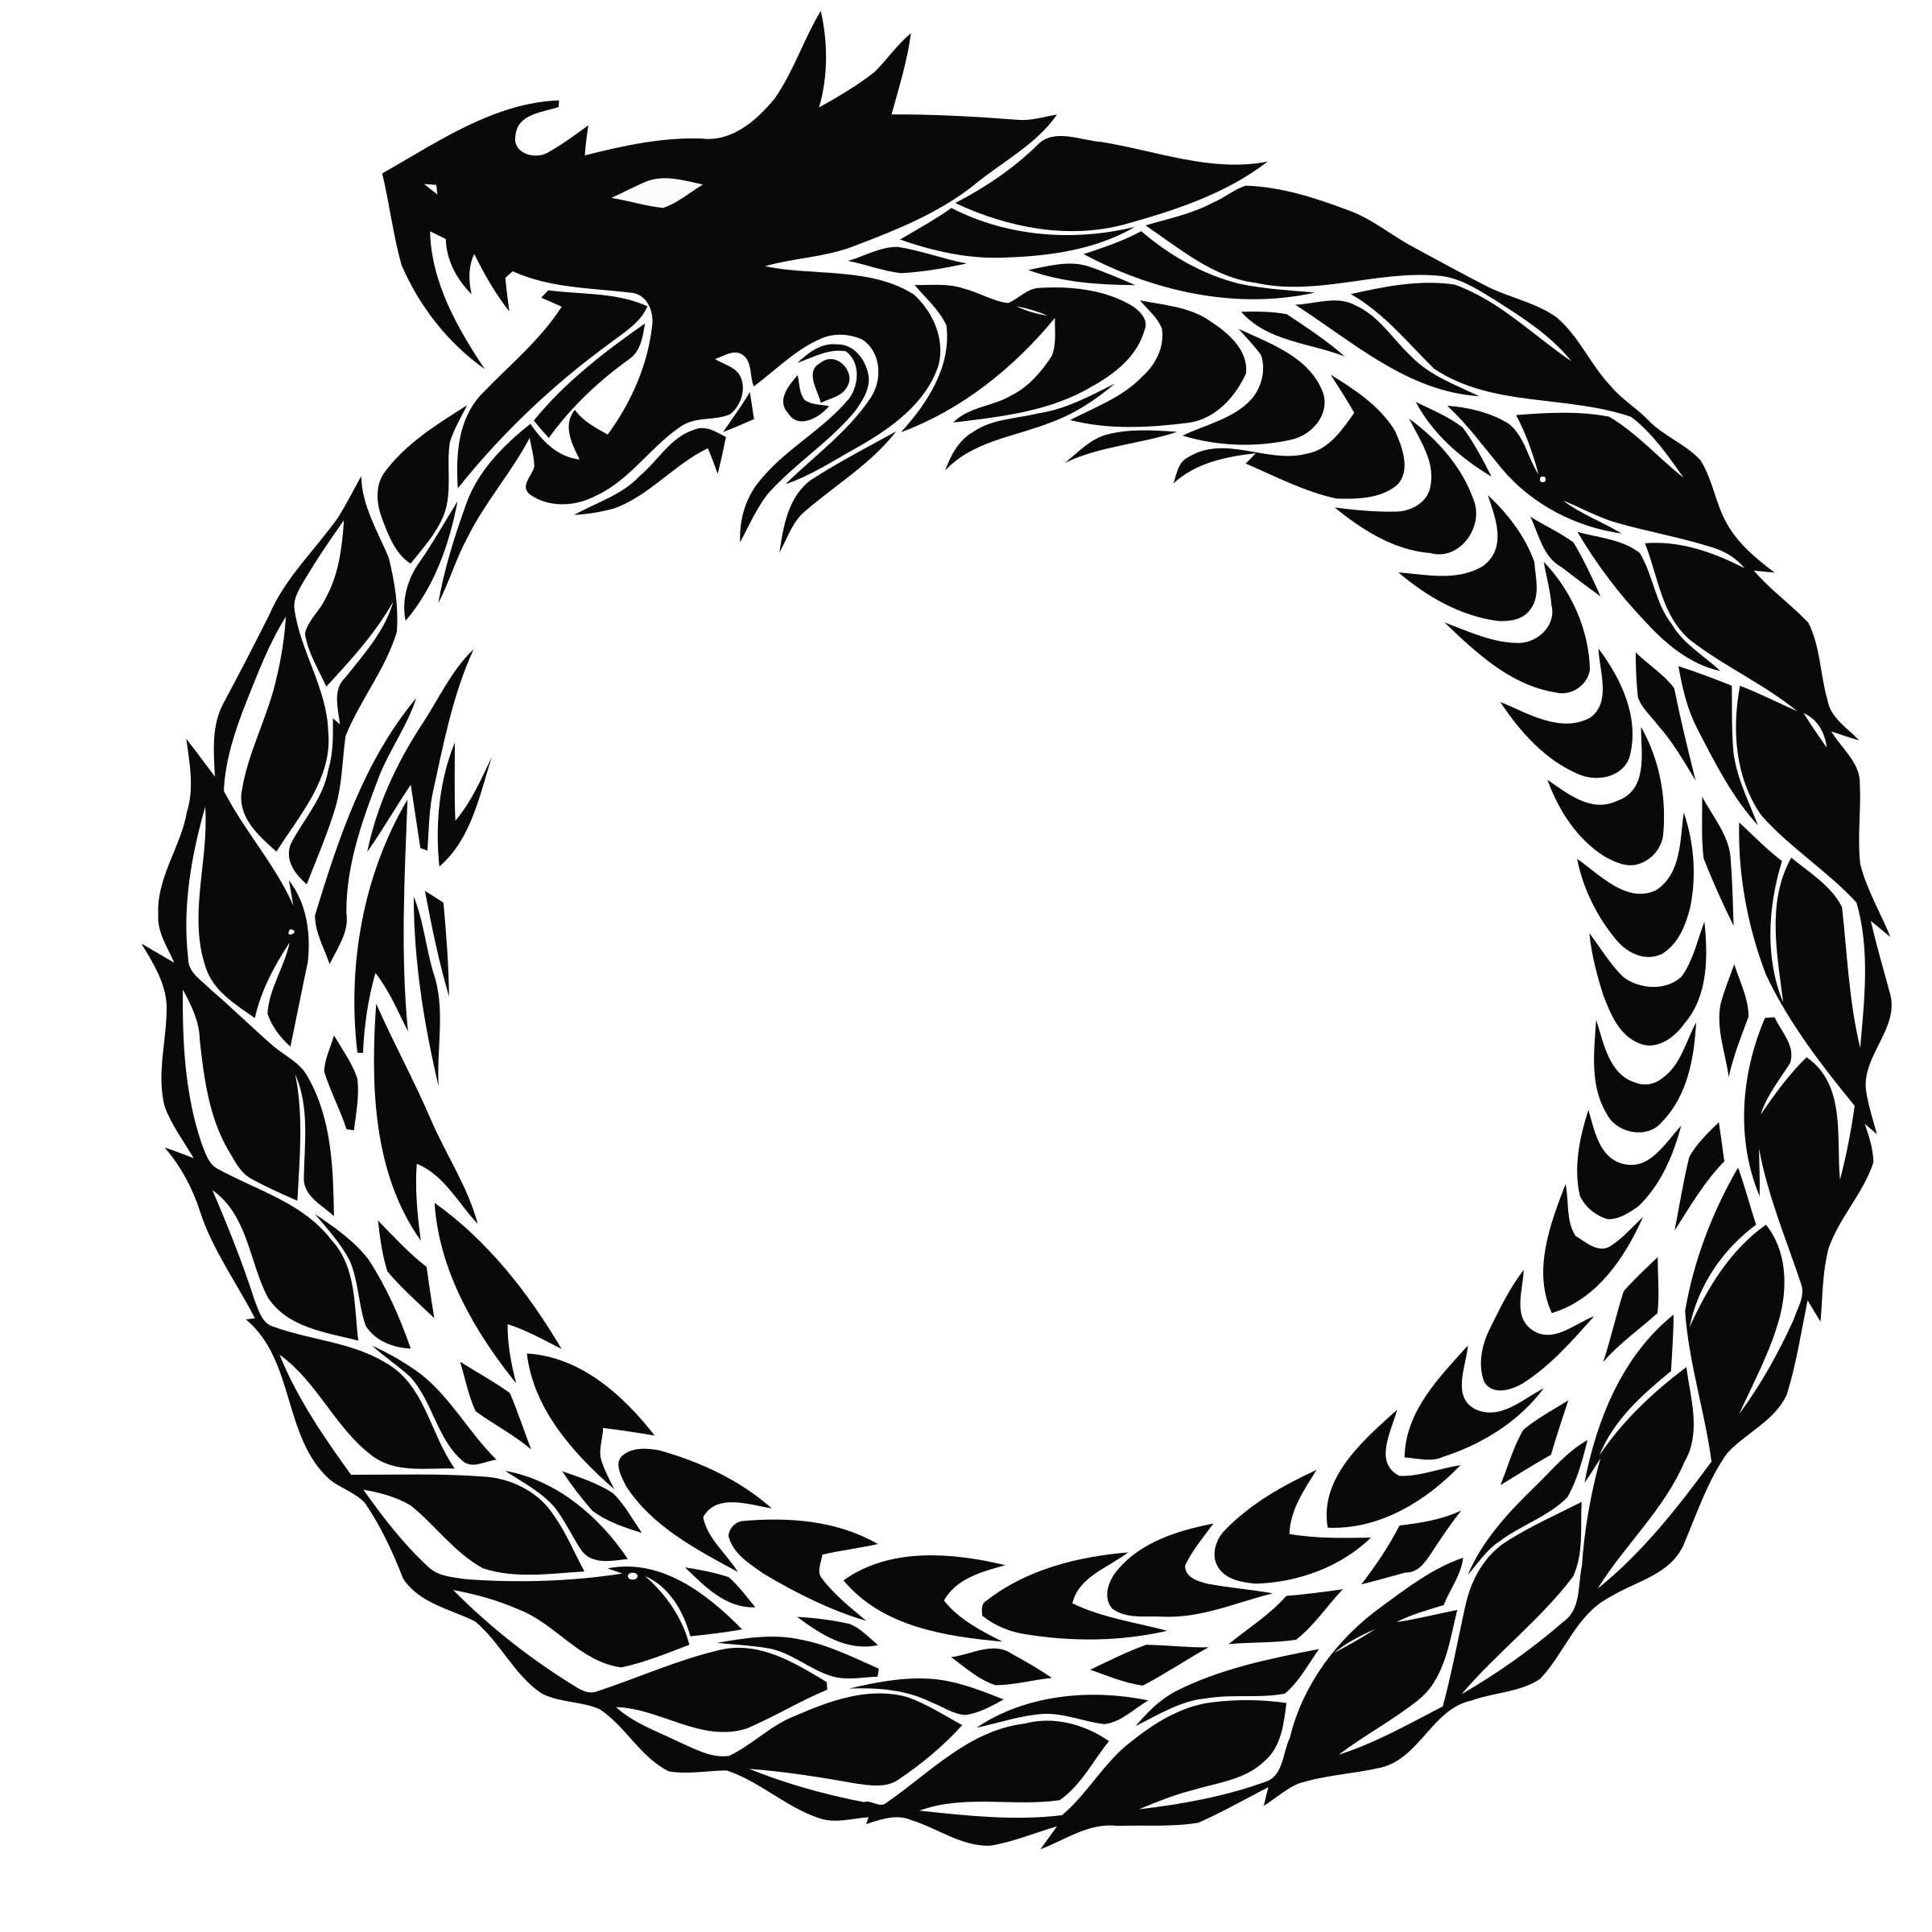 Ashes of creation ouroborostransparent. Ouroboros transparent png transparent library